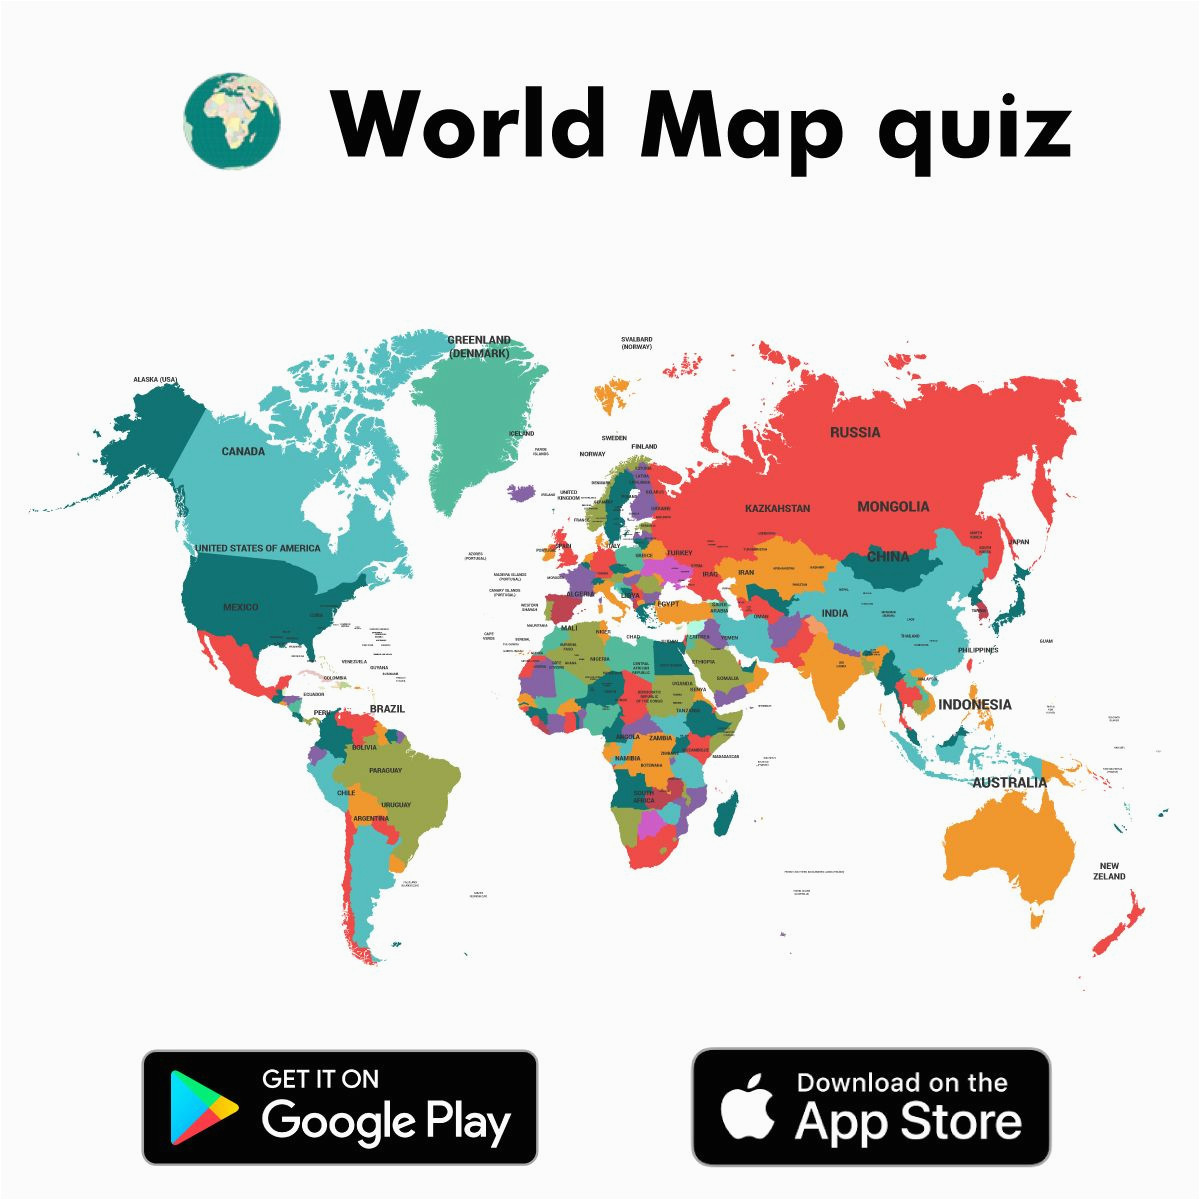 world map quiz app is an interesting app developed for kids